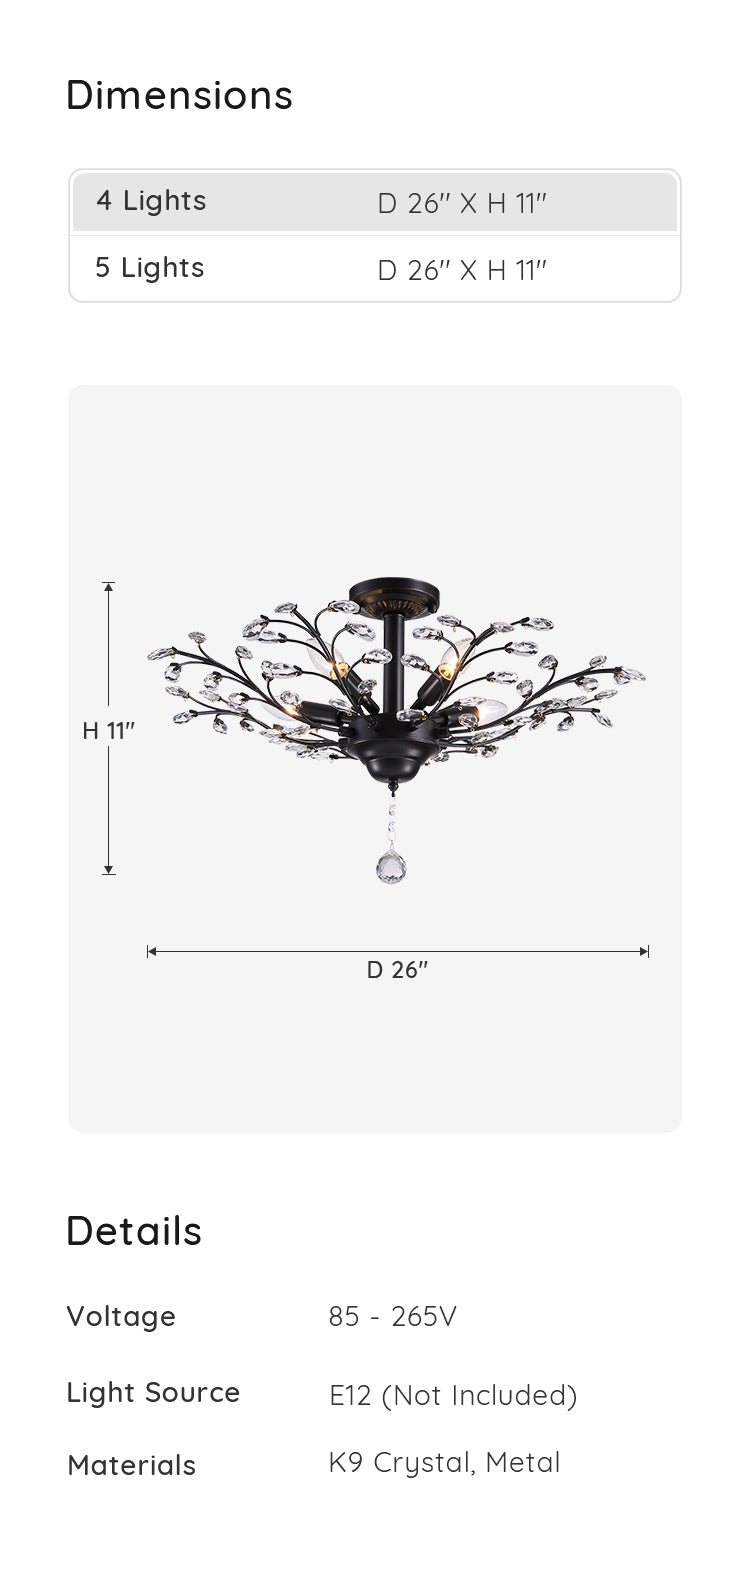 Crystal Branching Ceiling Light dimensions & parameters